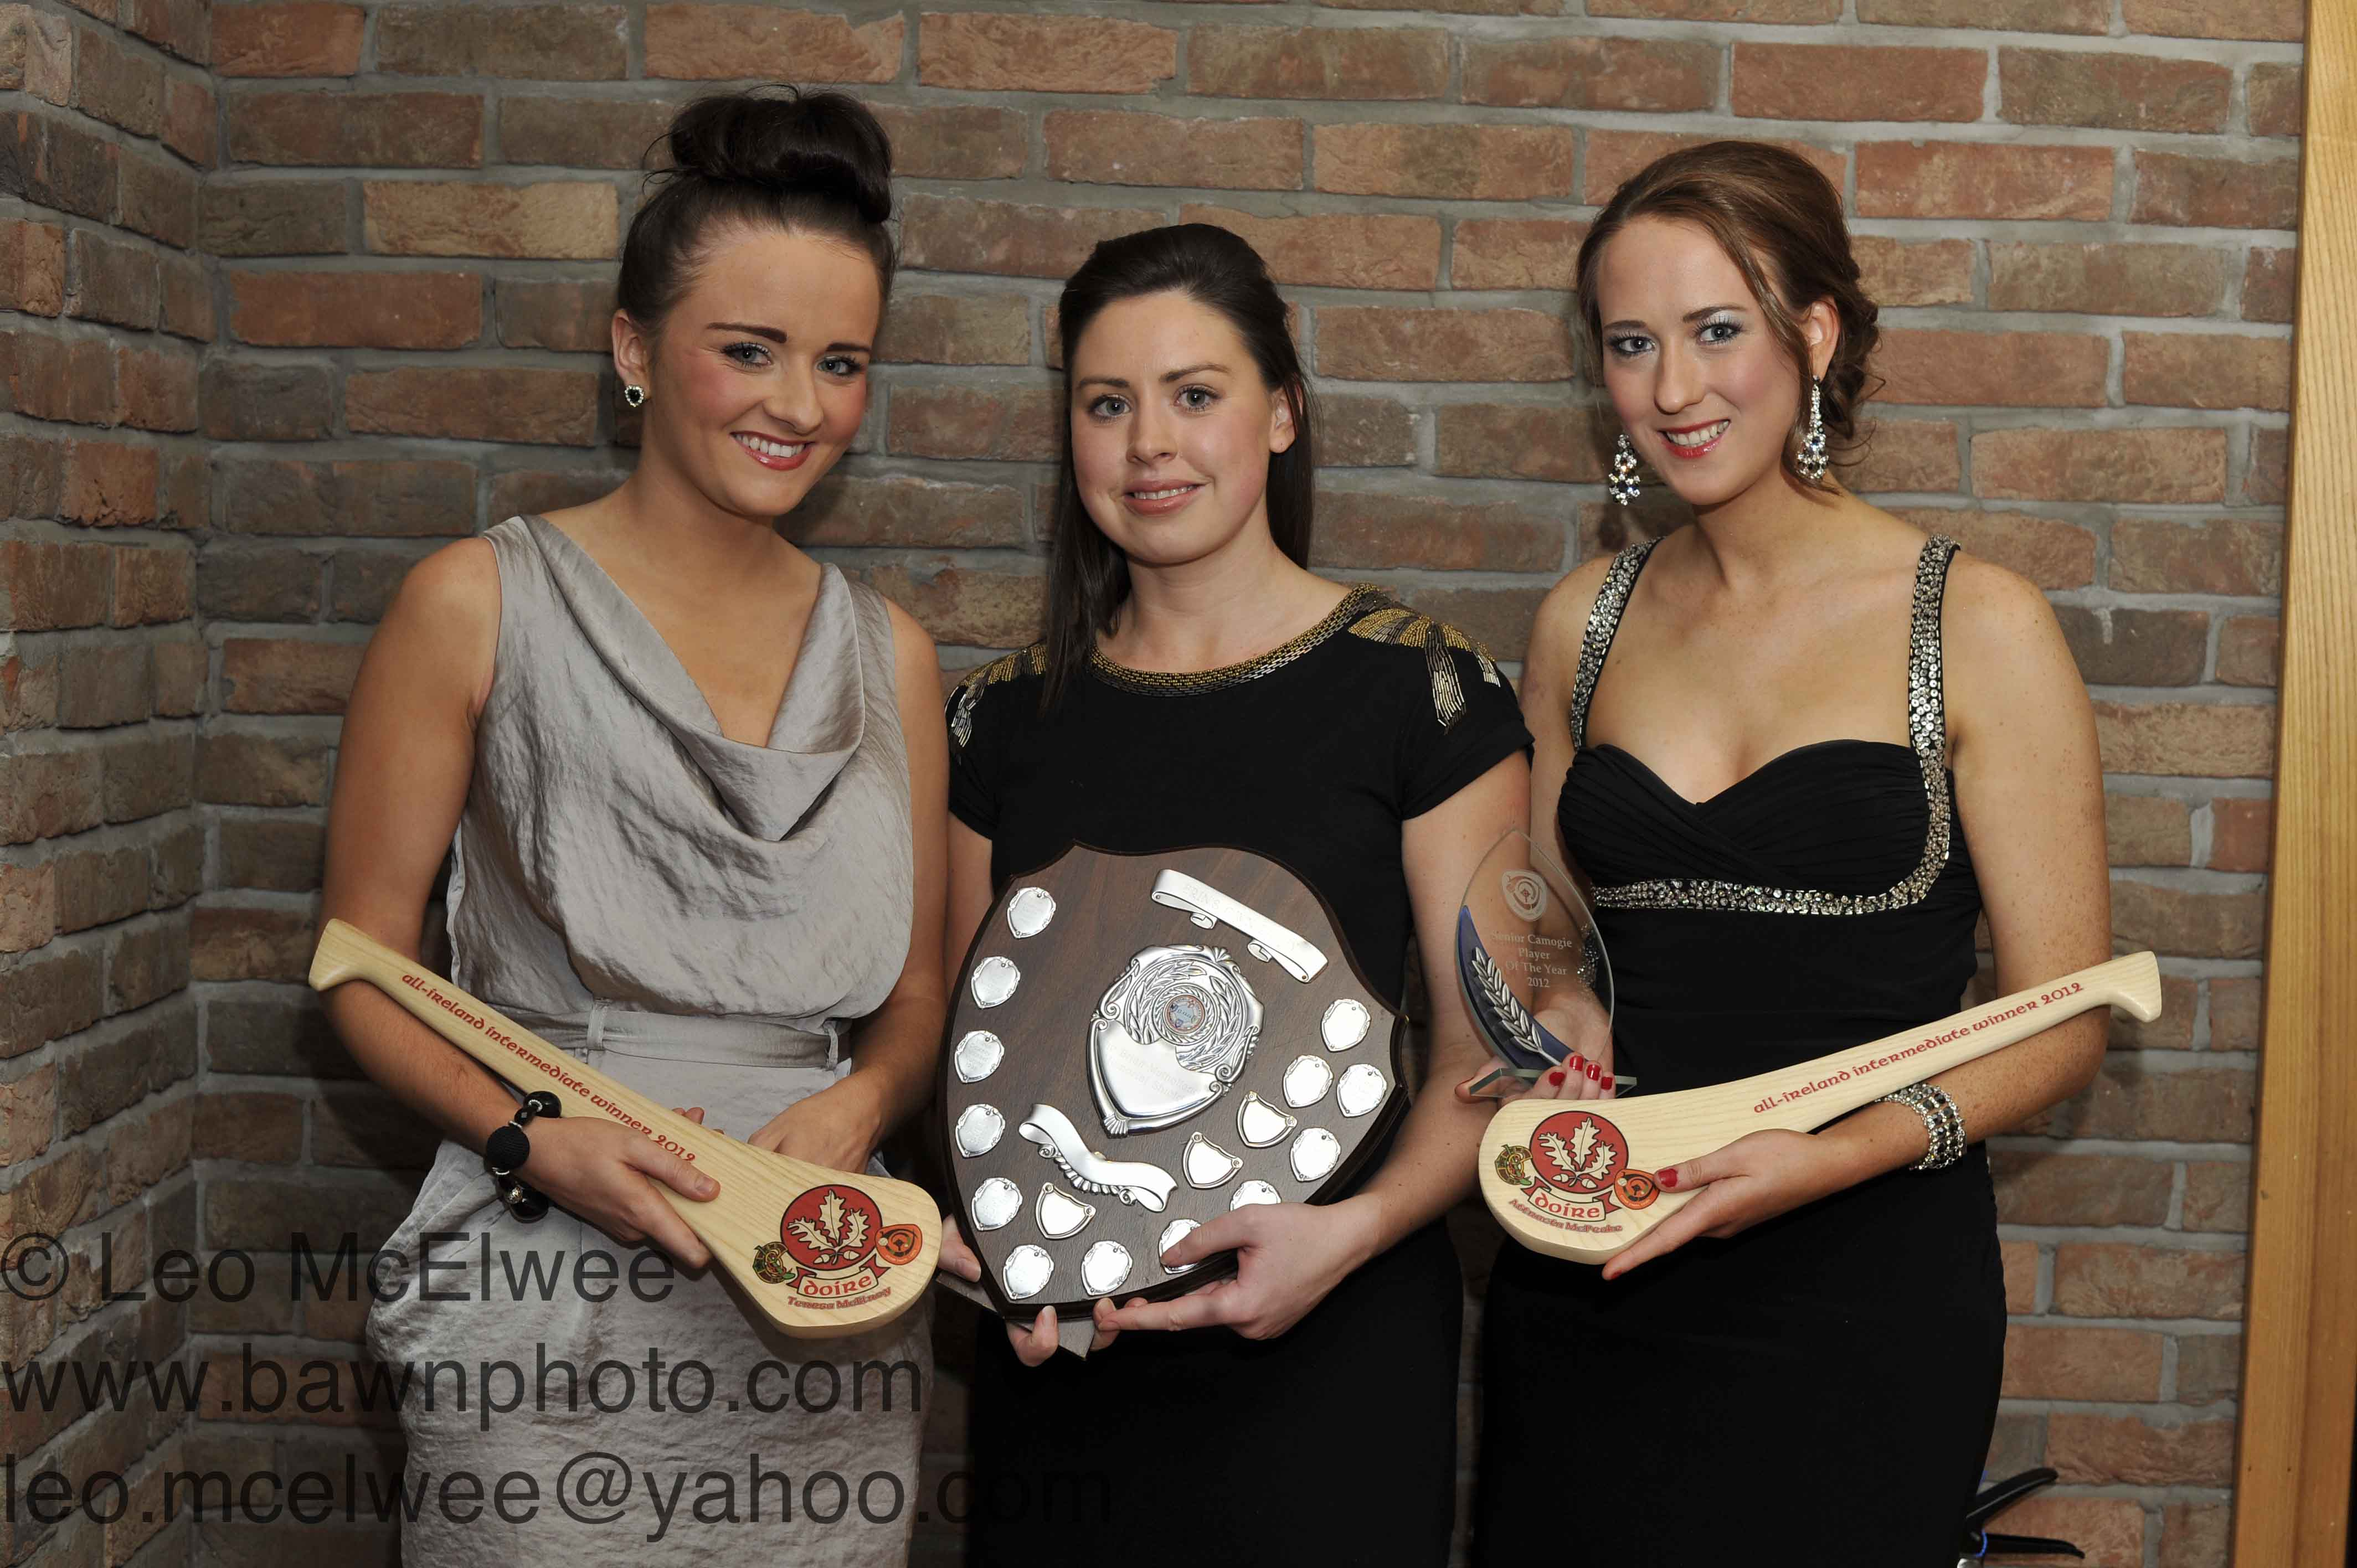 Lavey Camogs;  Teresa McElroy (left) and Attracta McPeake (right) were presented with an award to celebrate their All Ireland success while Attracta was also presented with the Camogie Player of the Year award.  Edelle Henry (centre) was presented with Club Person of the Year.